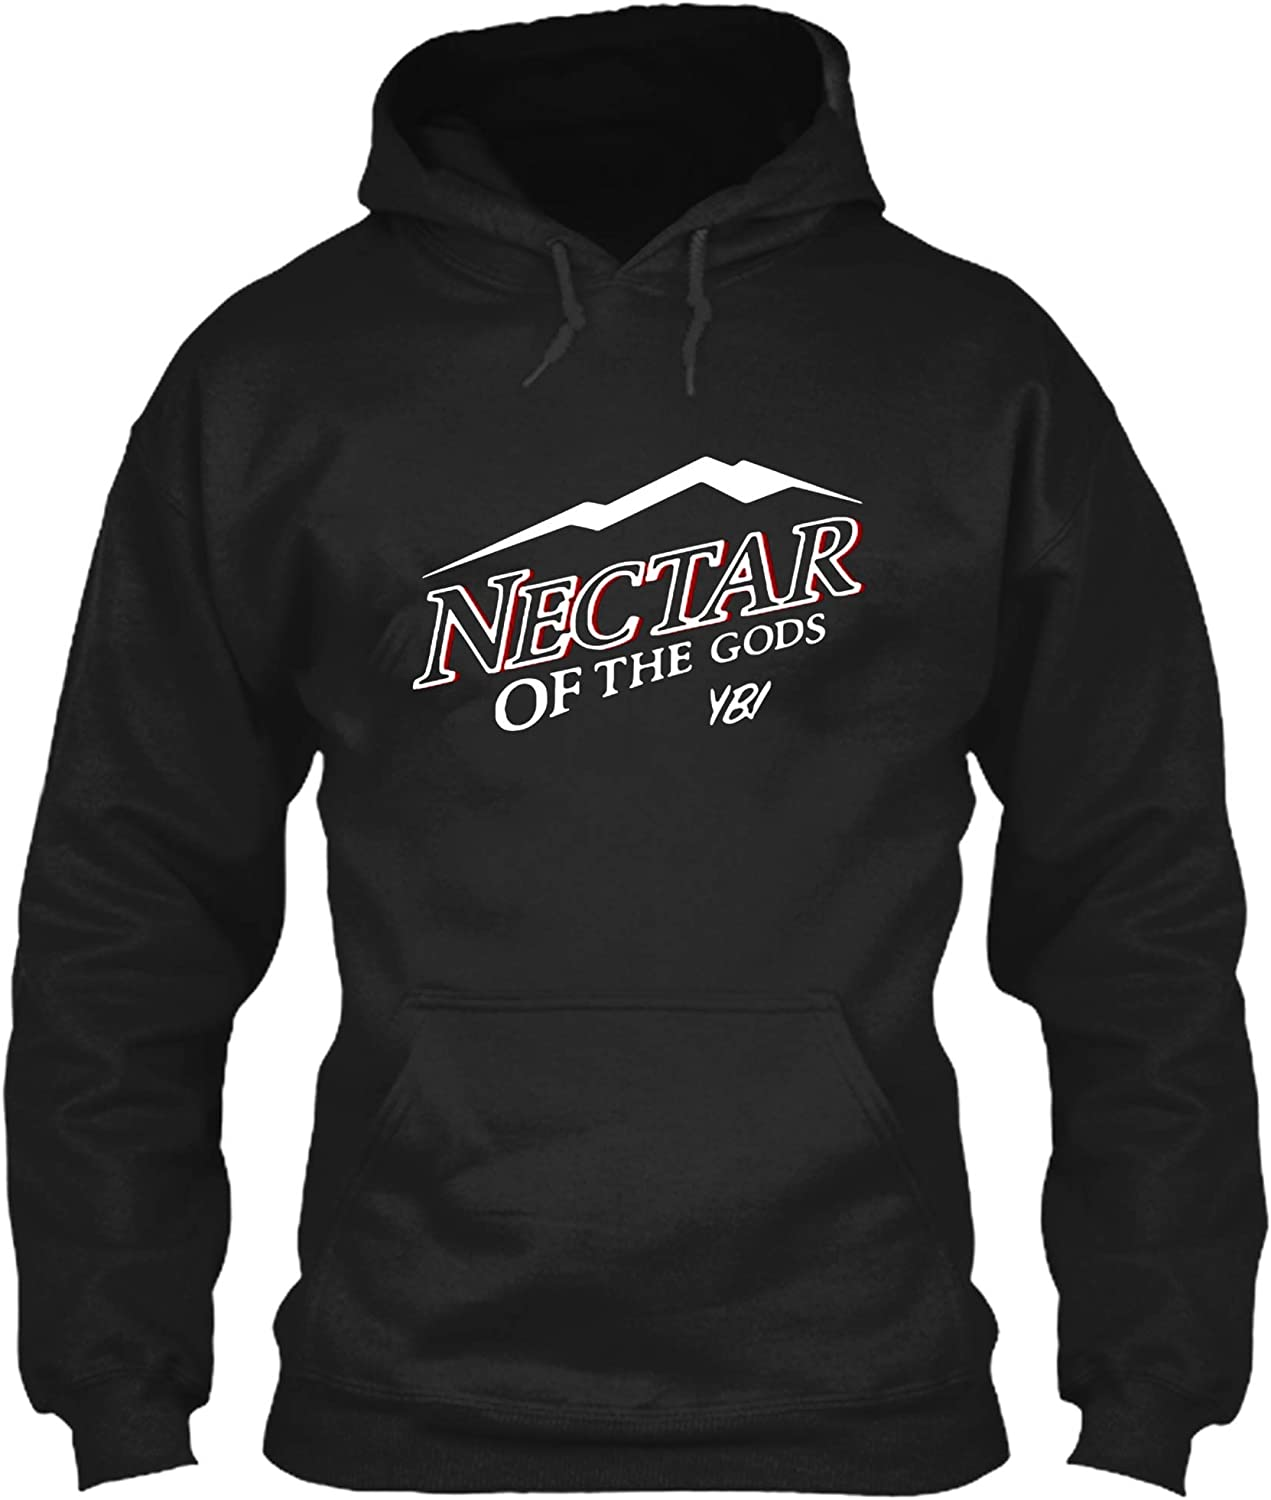 Nectar of The Gods Yb You Betcha Women Direct store Black Men Gift Hoodie for Finally popular brand